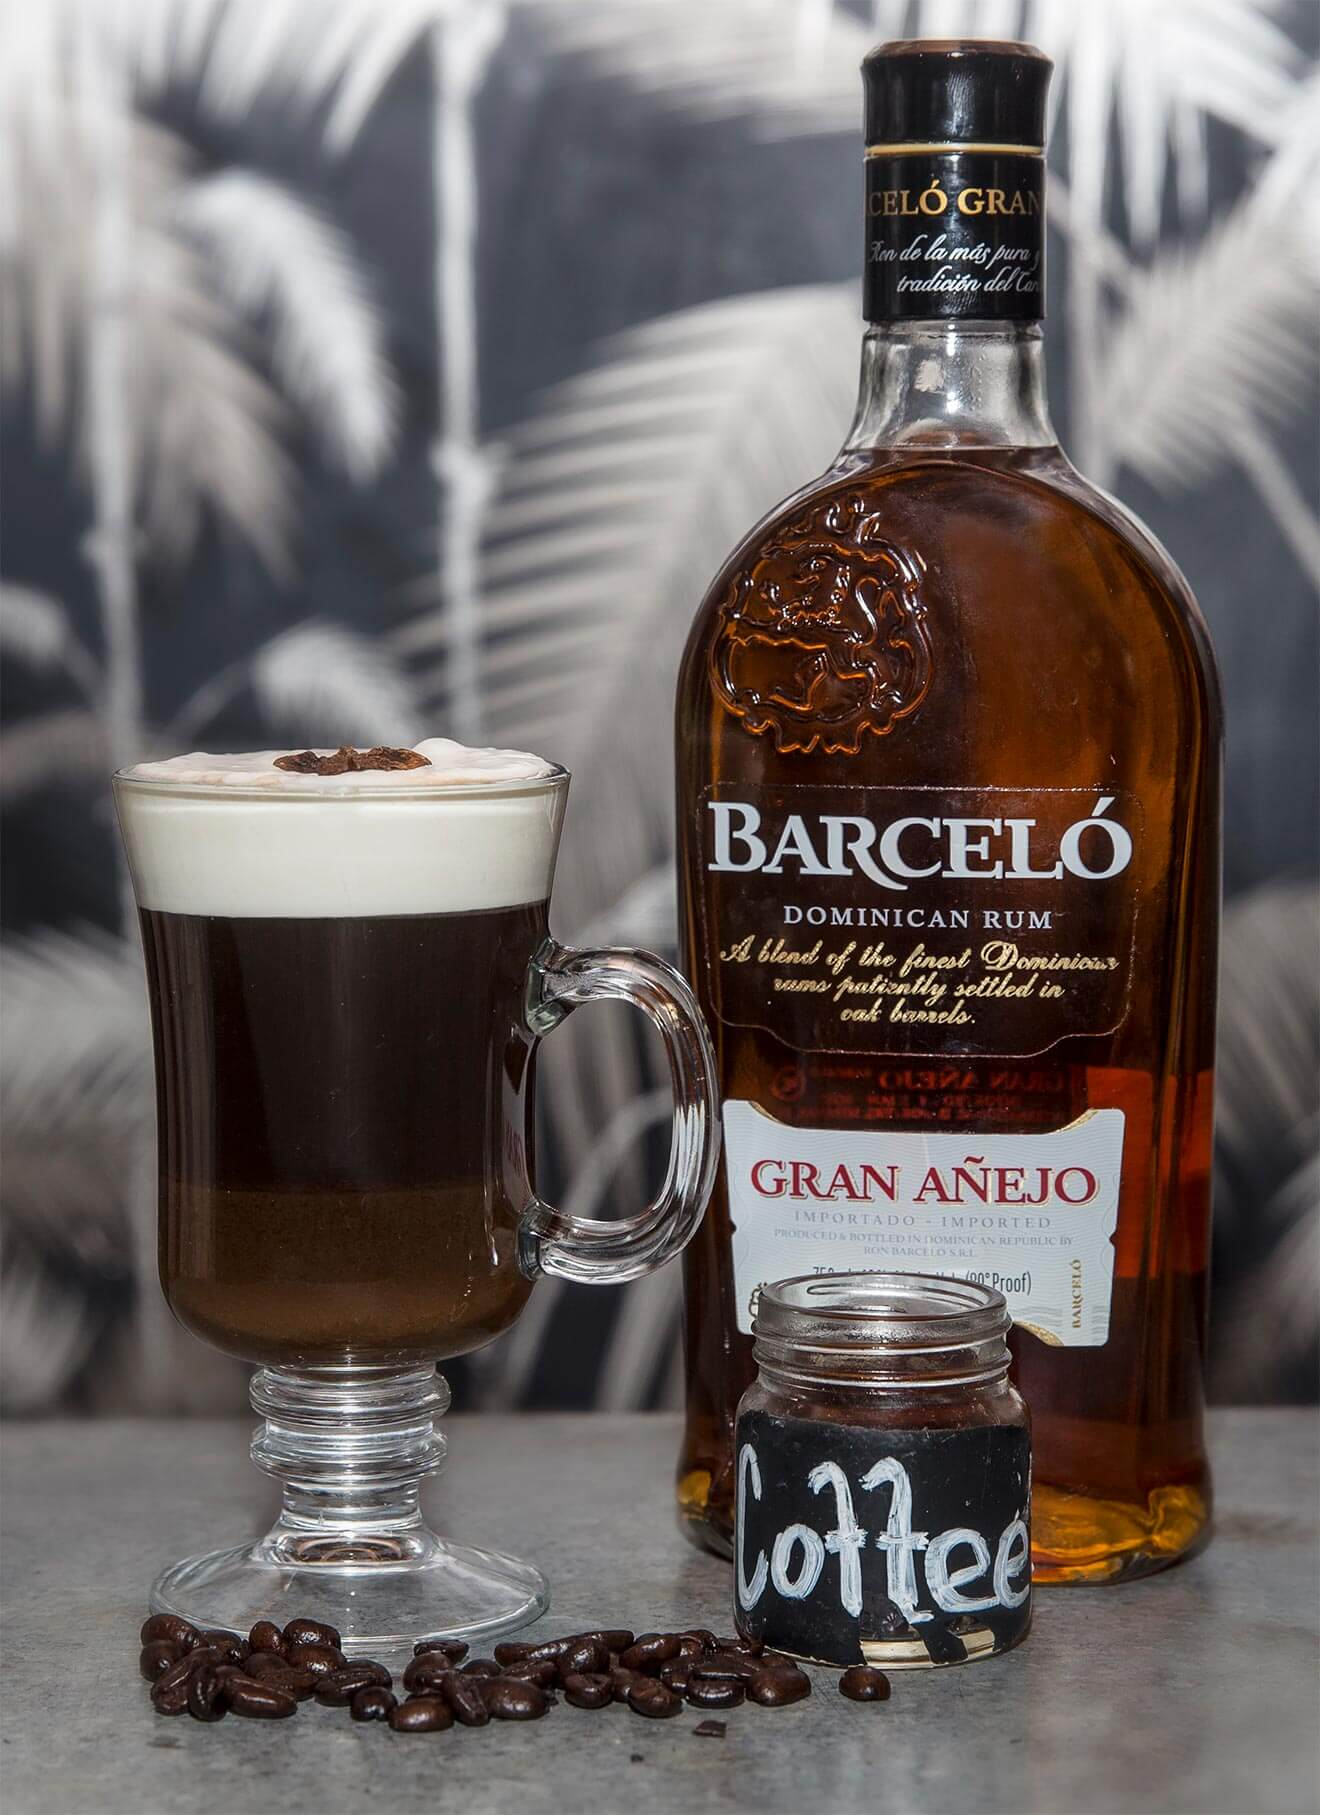 Pumpkin Spiced Dominican Coffee, cocktail and bottle